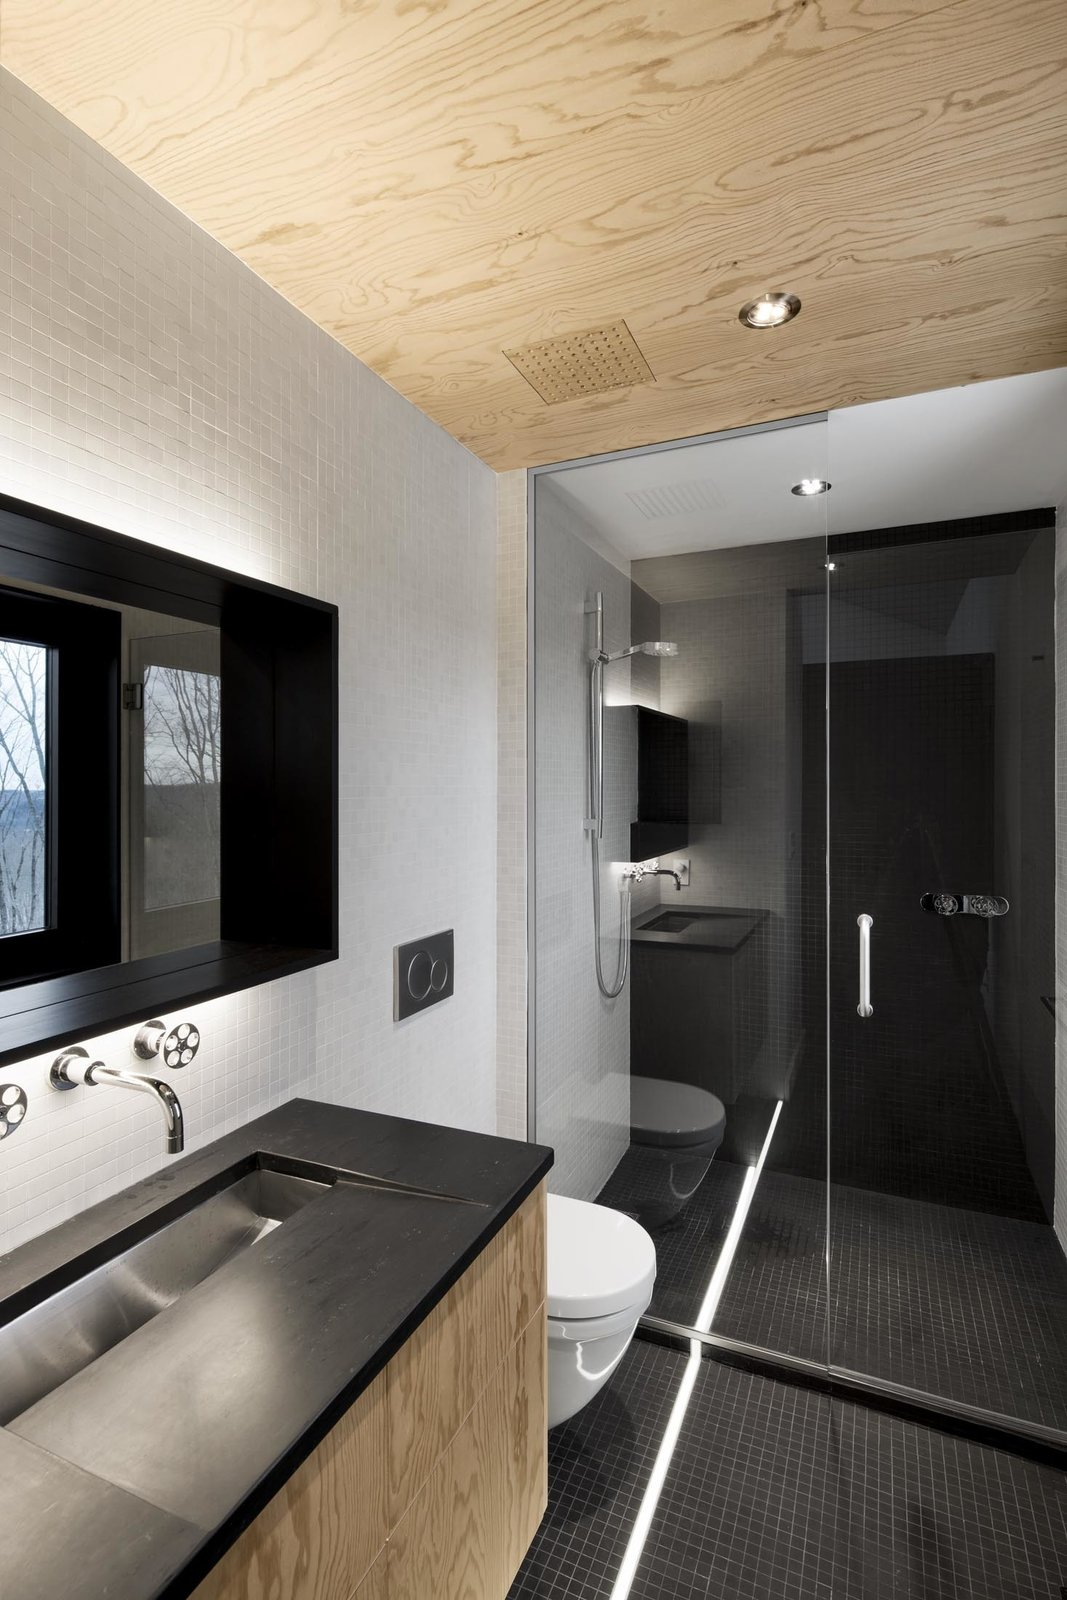 In the bathroom, the architects mounted a Kohler sink on a sloped, custom-slate countertop. Since the stone doesn't hold up well in water, the architect switched to black mosaic tile in the shower. The faucets are from Cabano's Century series. Tagged: Bath Room, Ceramic Tile Floor, Undermount Sink, Full Shower, Ceiling Lighting, and Enclosed Shower.  Bathroom by LSA from Amazing Cantilevered Home in the Mountains